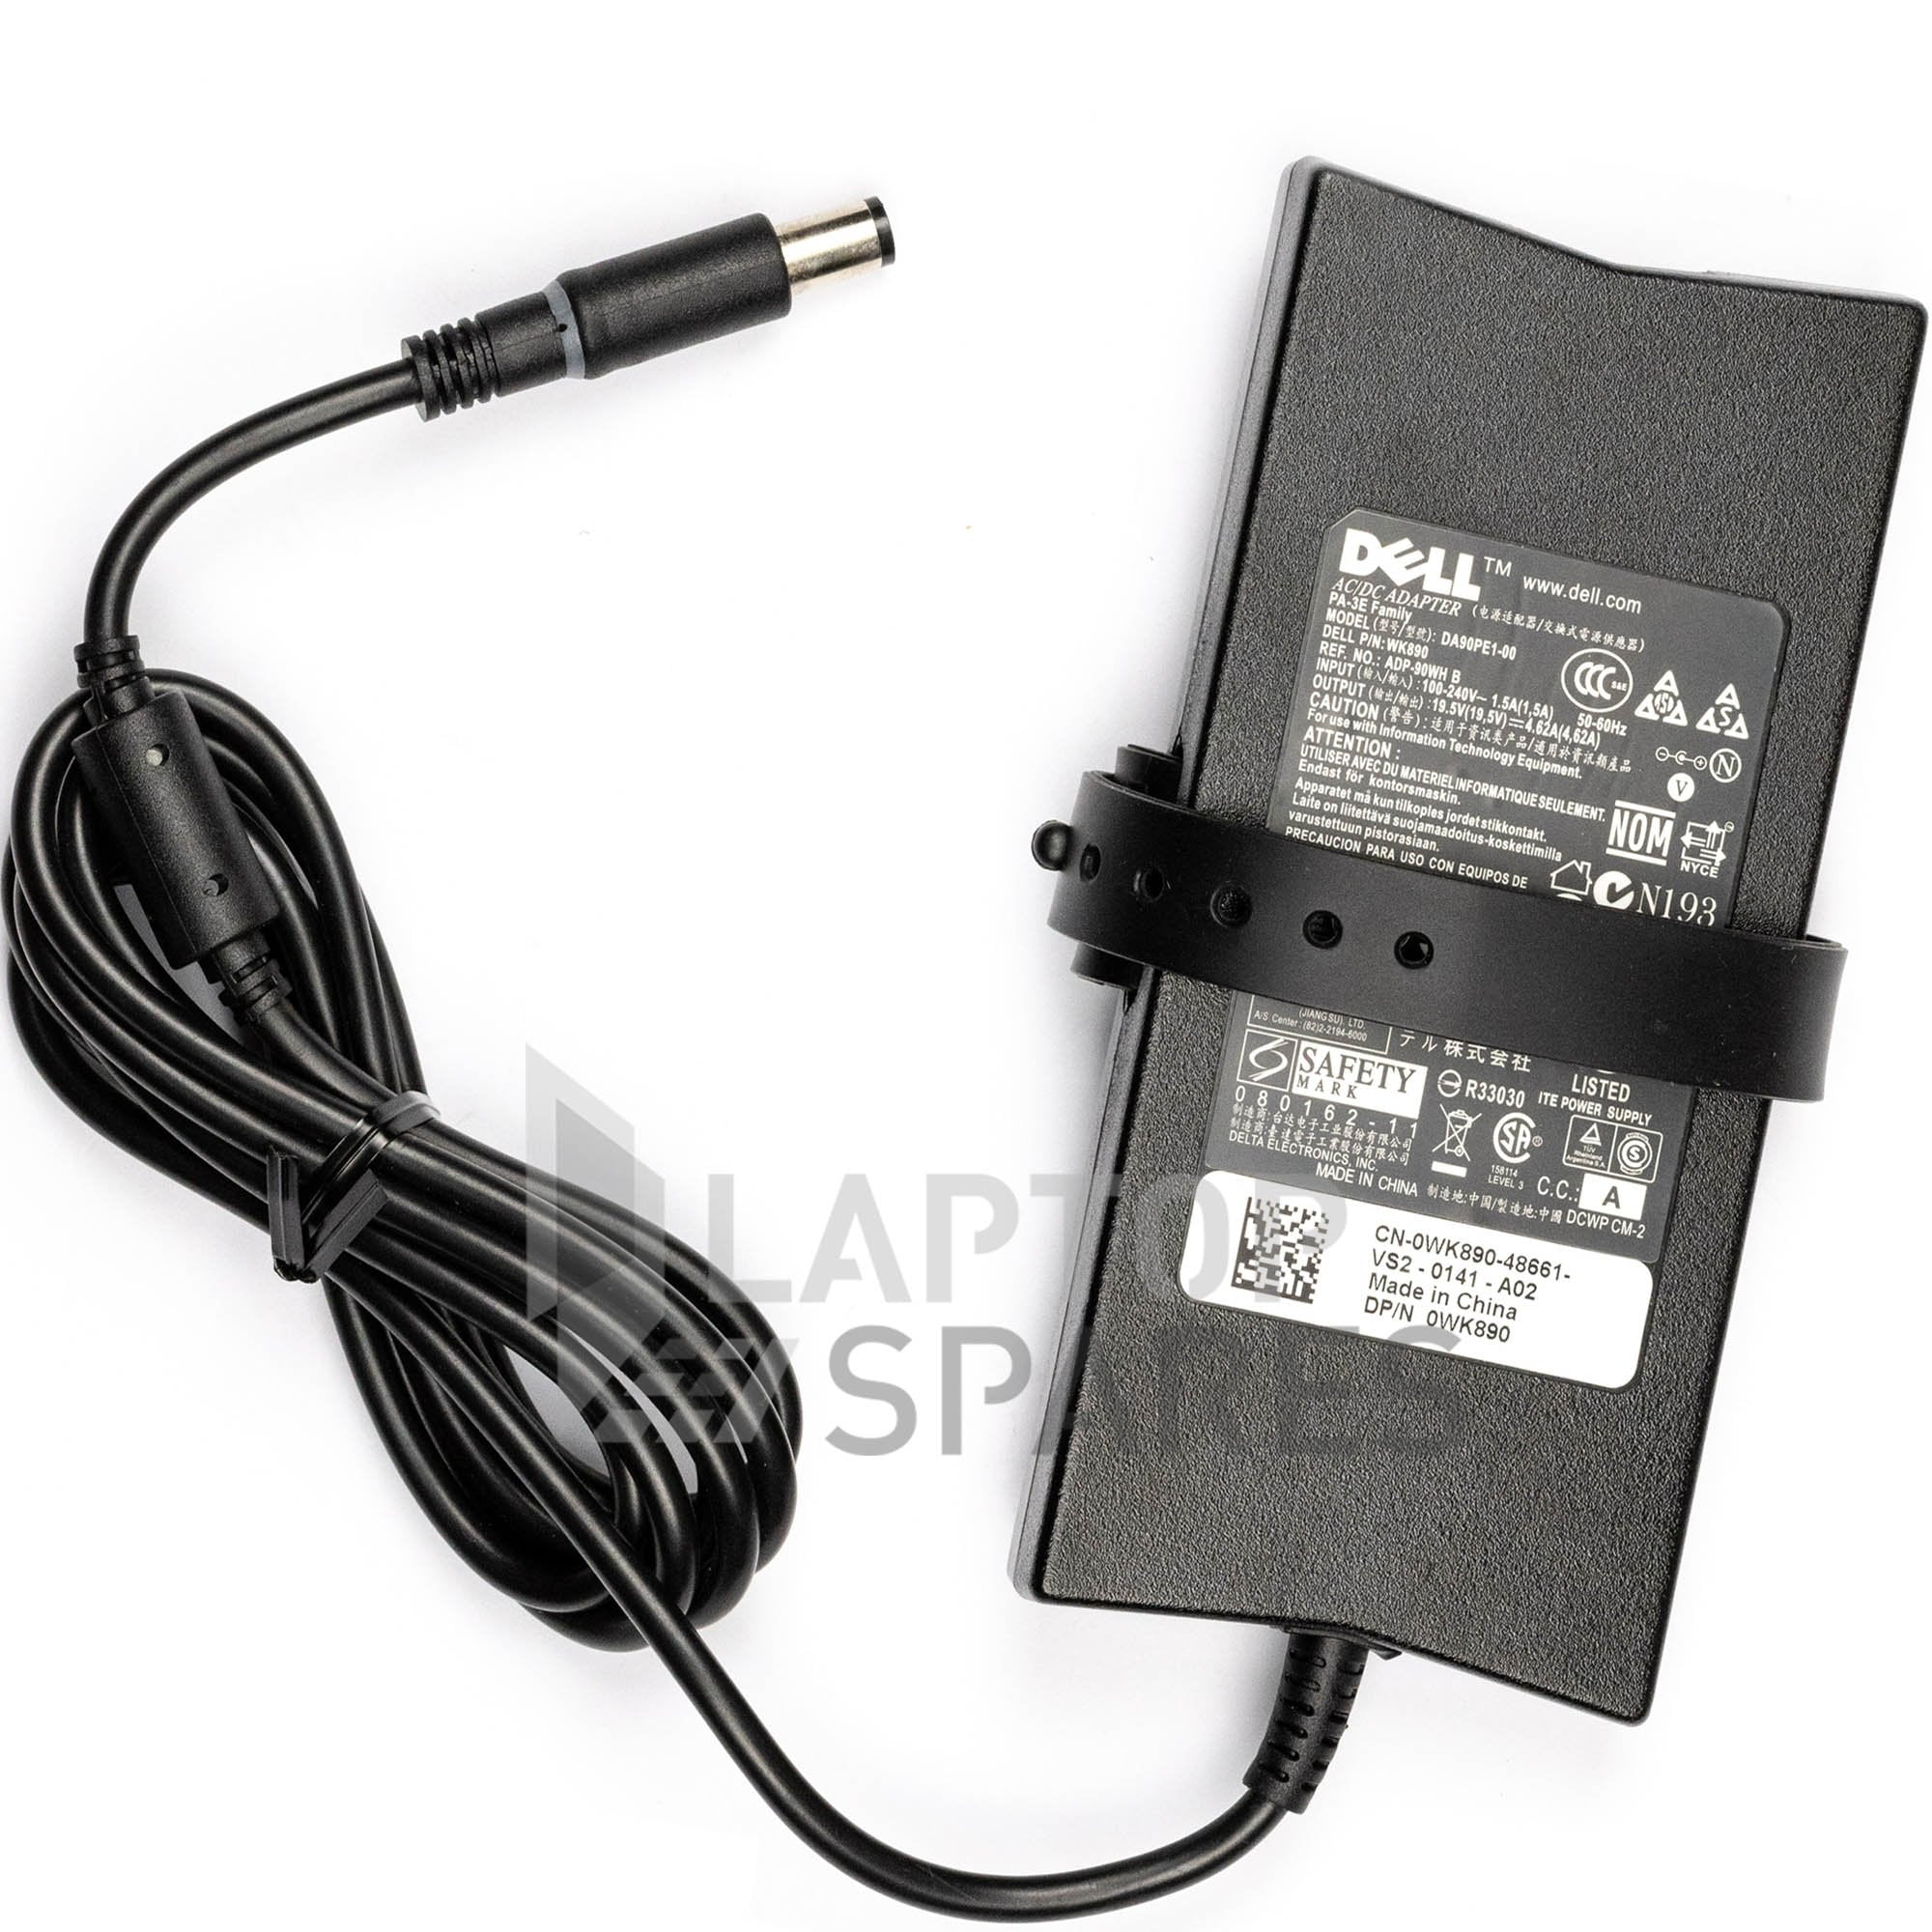 Dell XPS 14z L412z Laptop Slim AC Adapter Charger